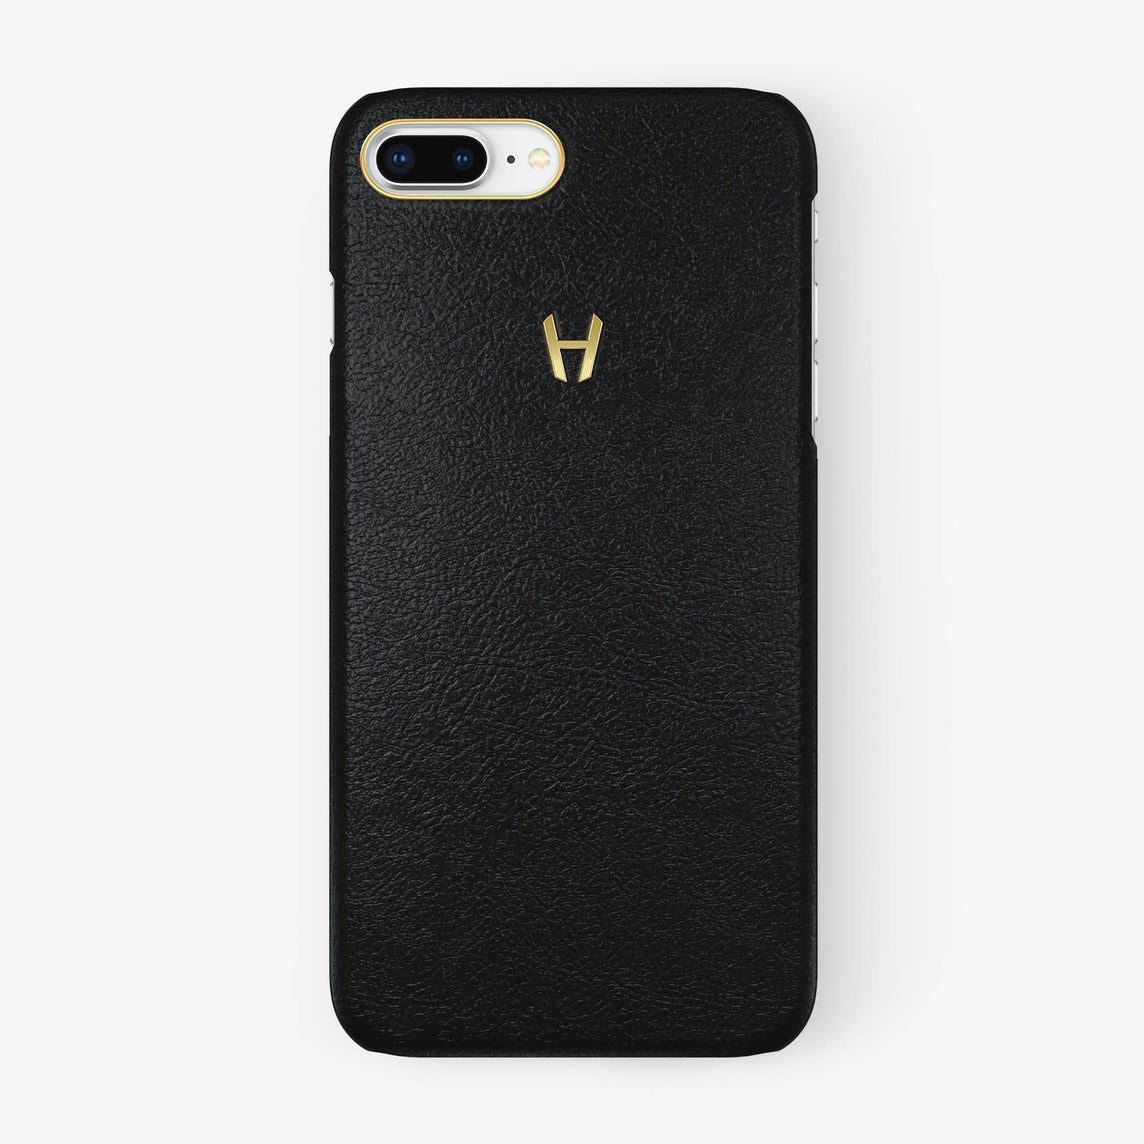 Black Calfskin iPhone Case for iPhone 7/8 Plus finishing yellow gold - Hadoro Luxury Cases